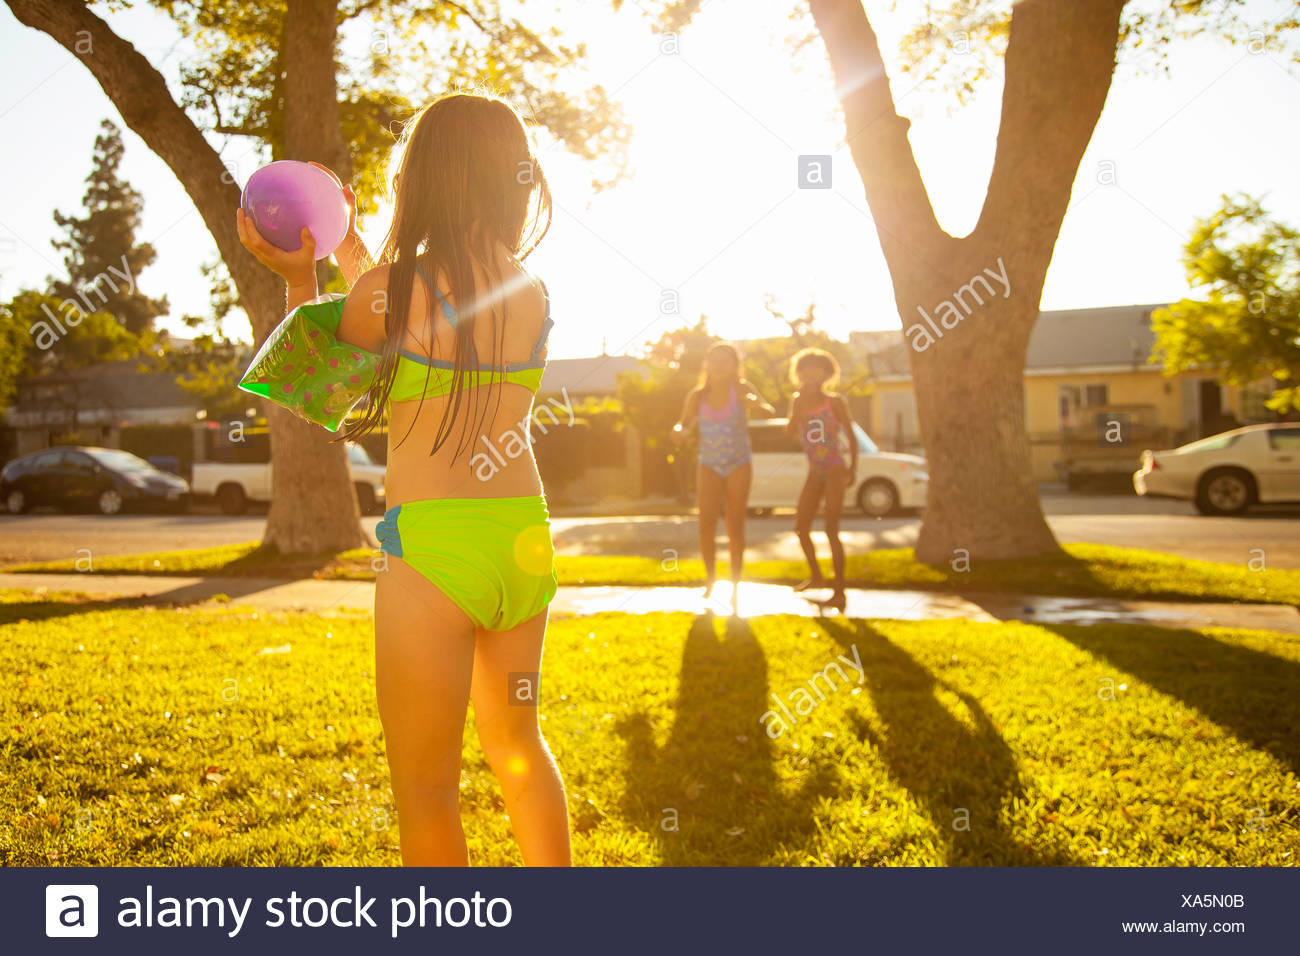 Girl chasing friends with water balloon in garden - Stock Image